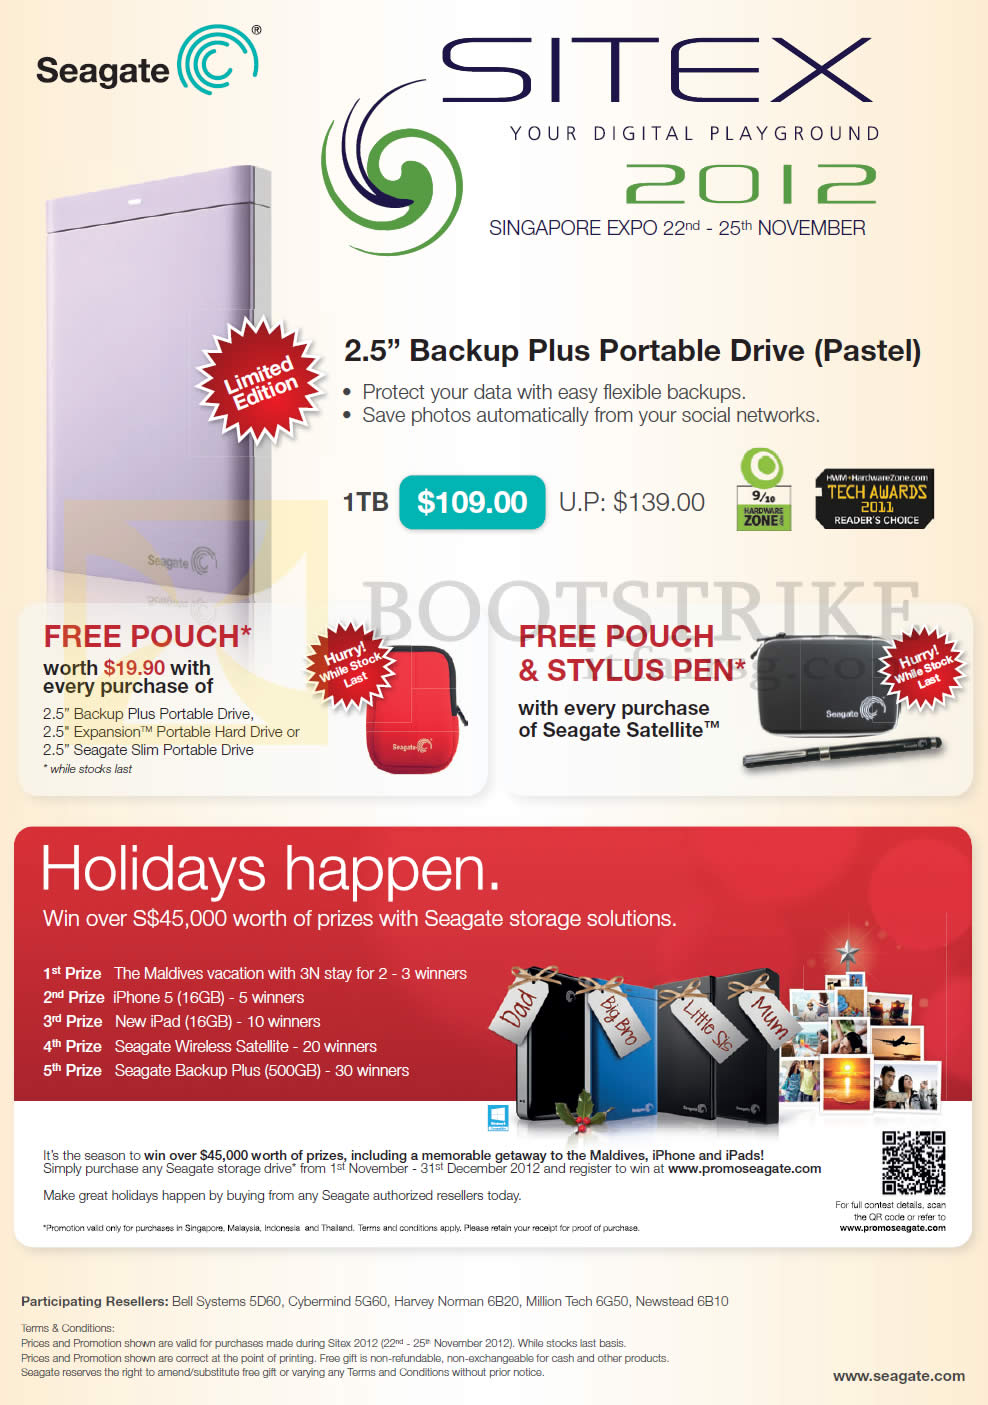 SITEX 2012 price list image brochure of Seagate External Storage Backup Plus Portable Drive Pastel 1TB